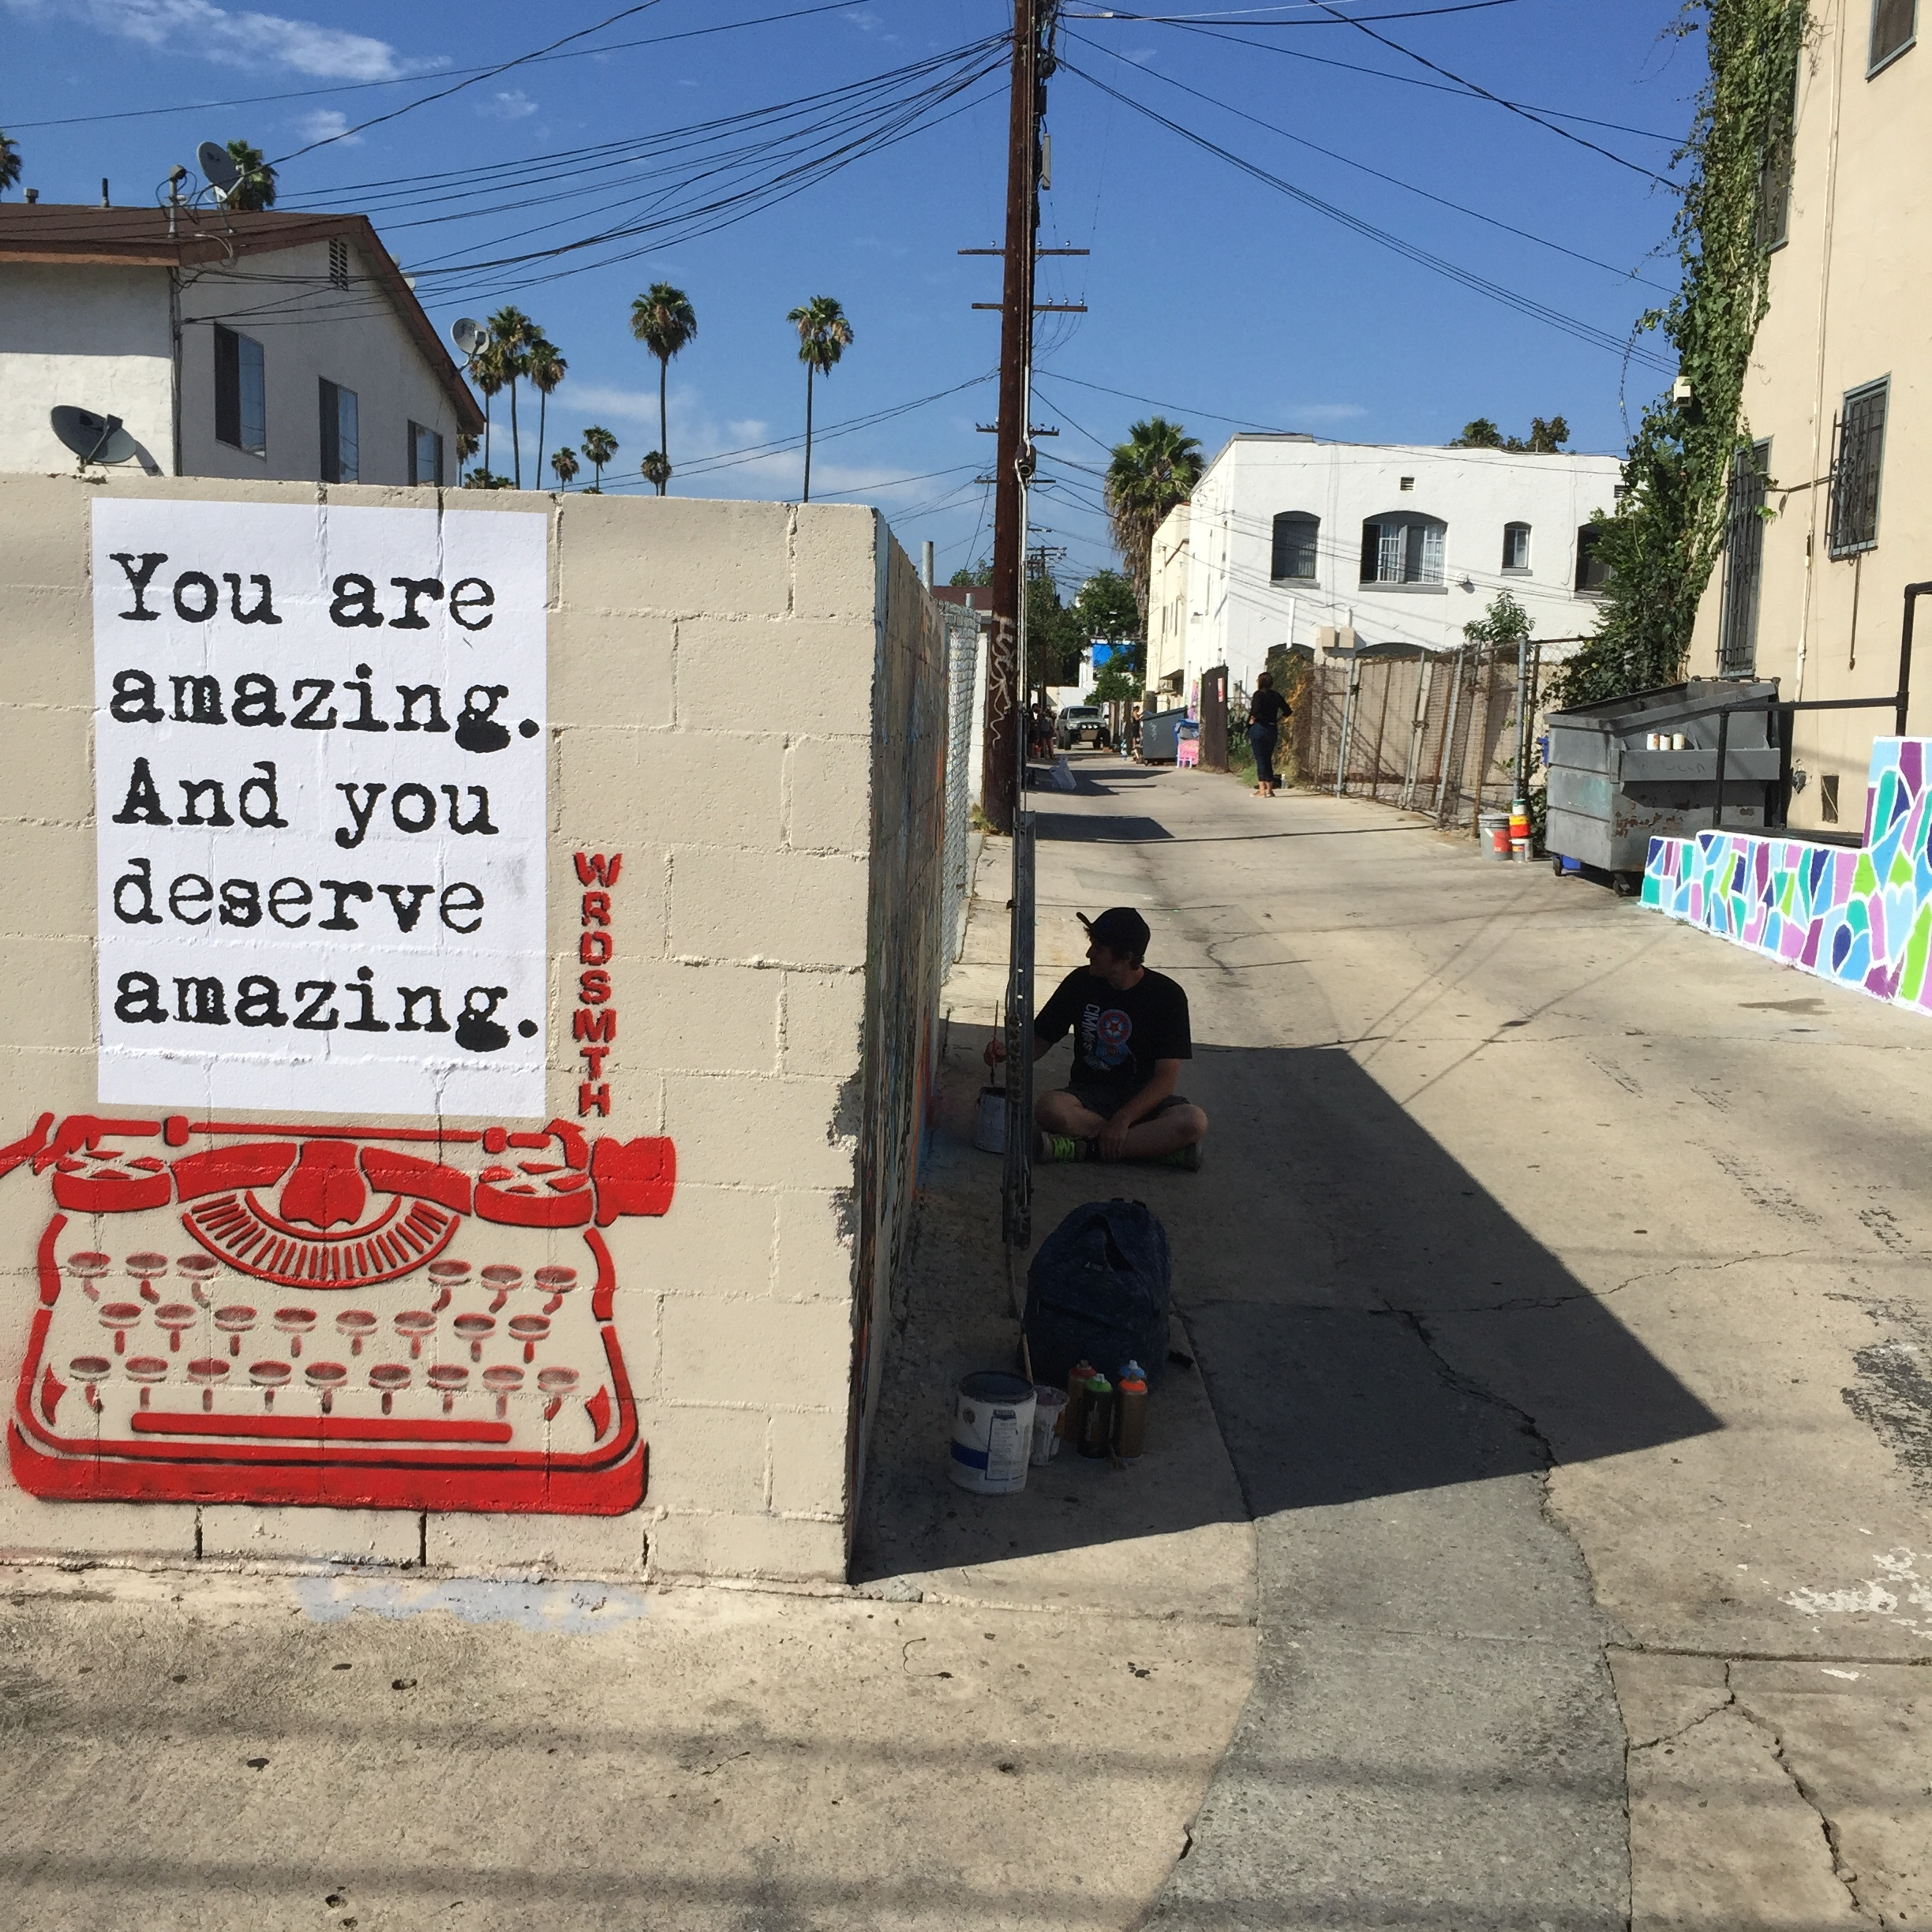 Mural: WRDSMTH